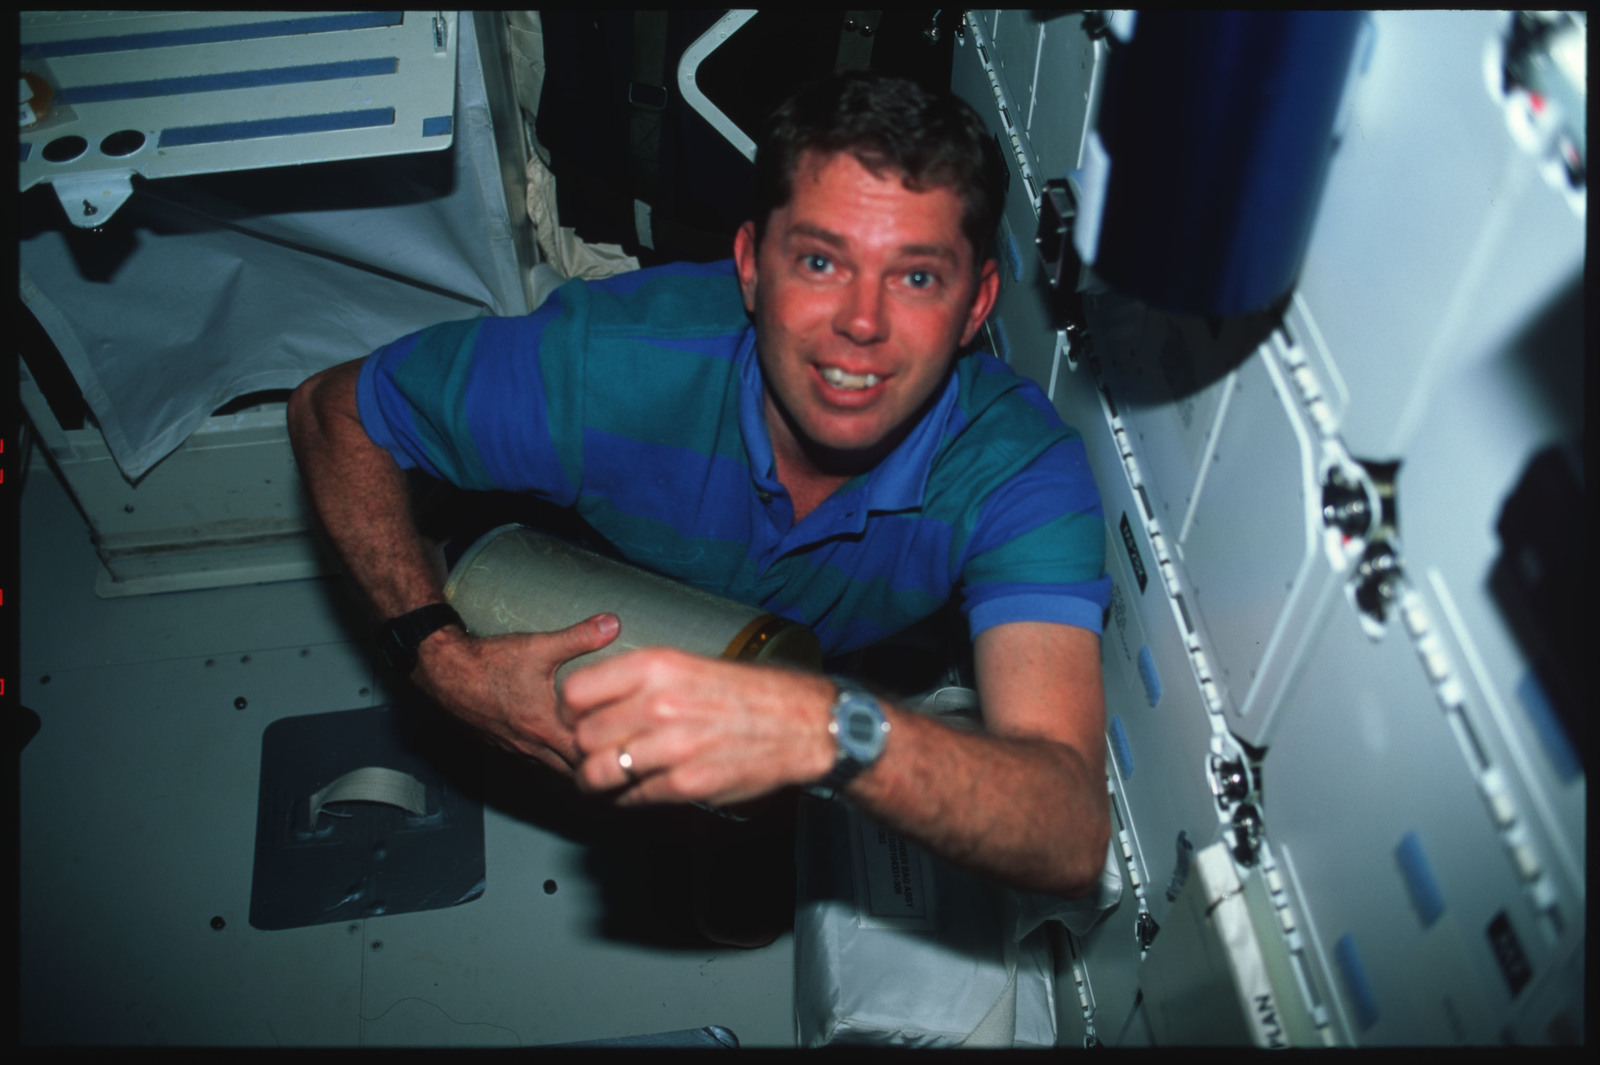 S45-41-019 - STS-045 - STS-45 crewmembers switch out LiOH canisters